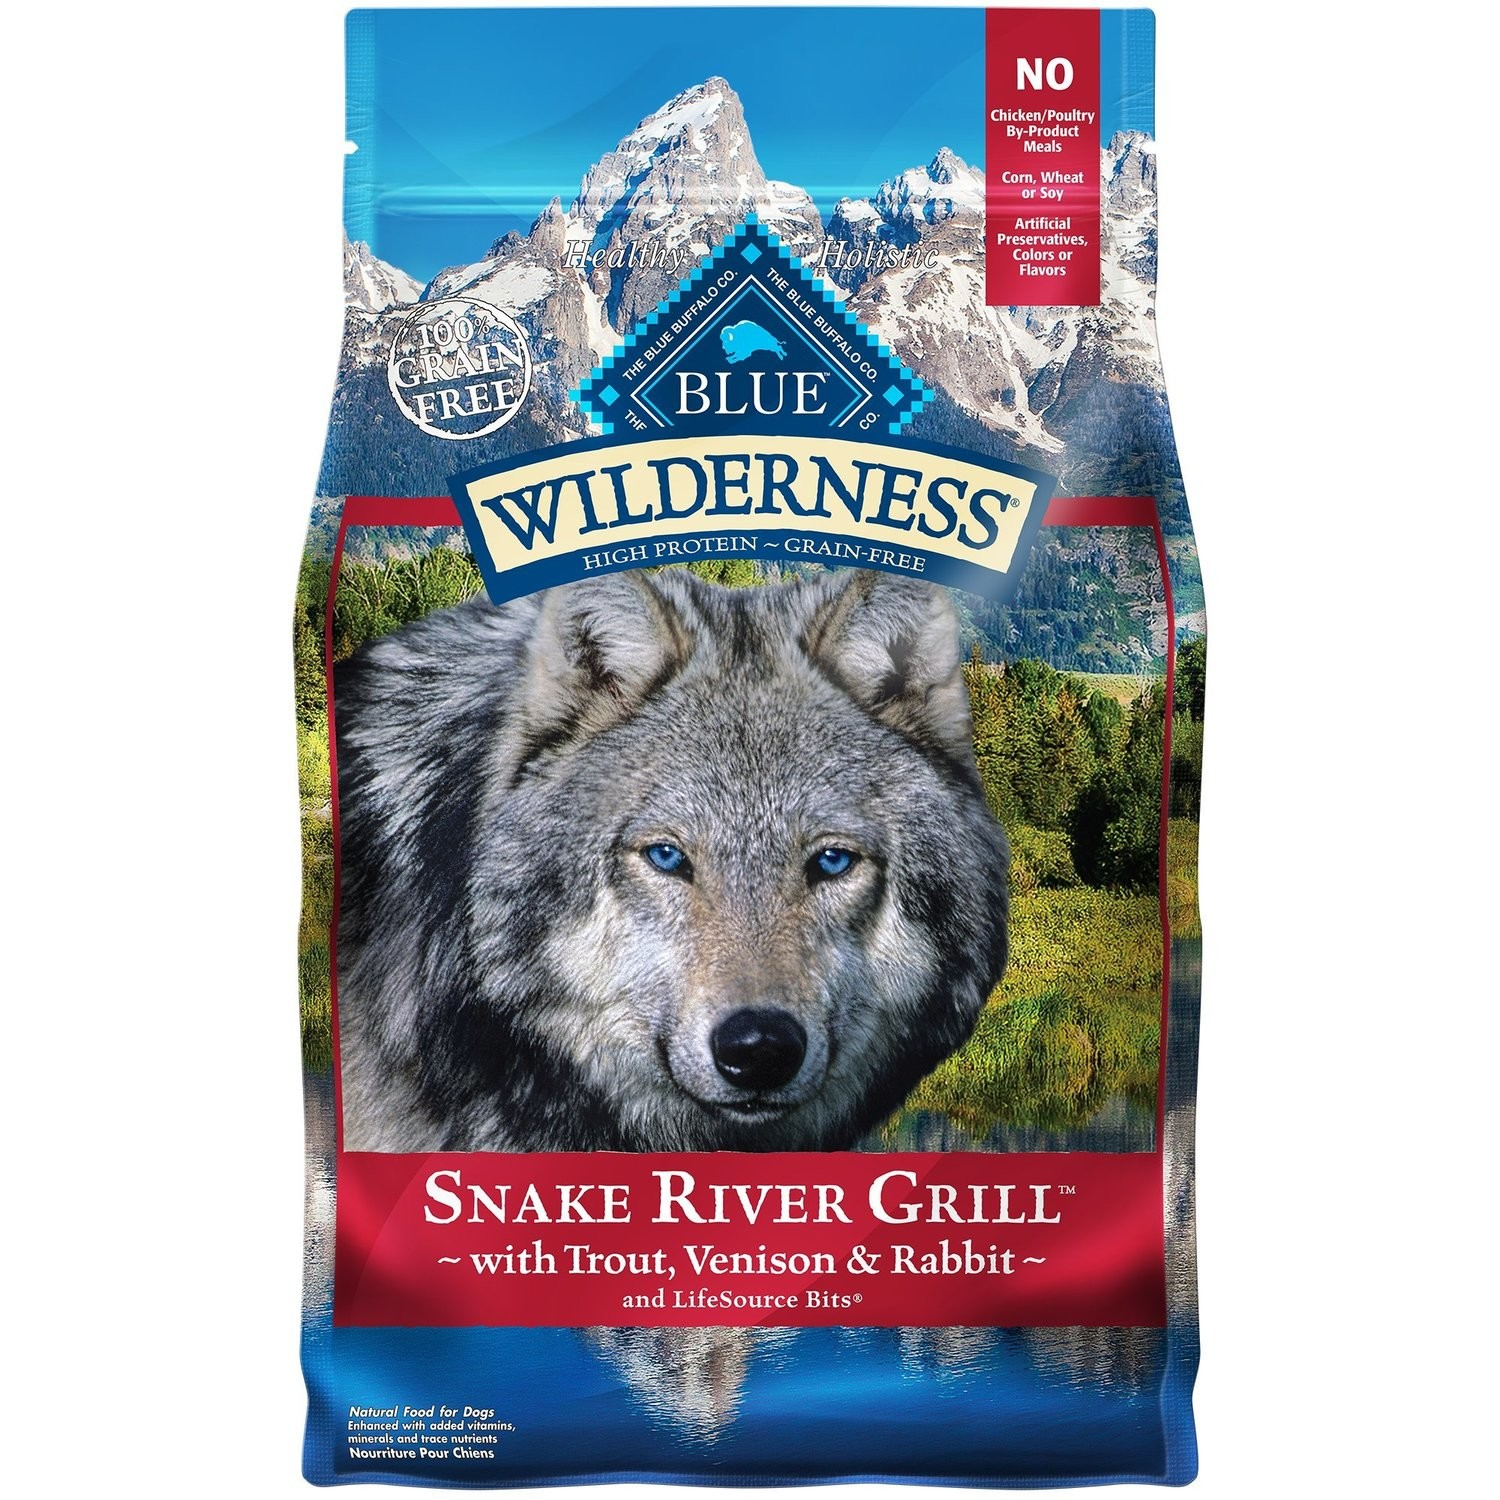 BLUE WILDERNESS SNAKE RIVER GRILL W/TROUT, VENISON & RABBIT 4 LBS (2/19) (A.Q5)